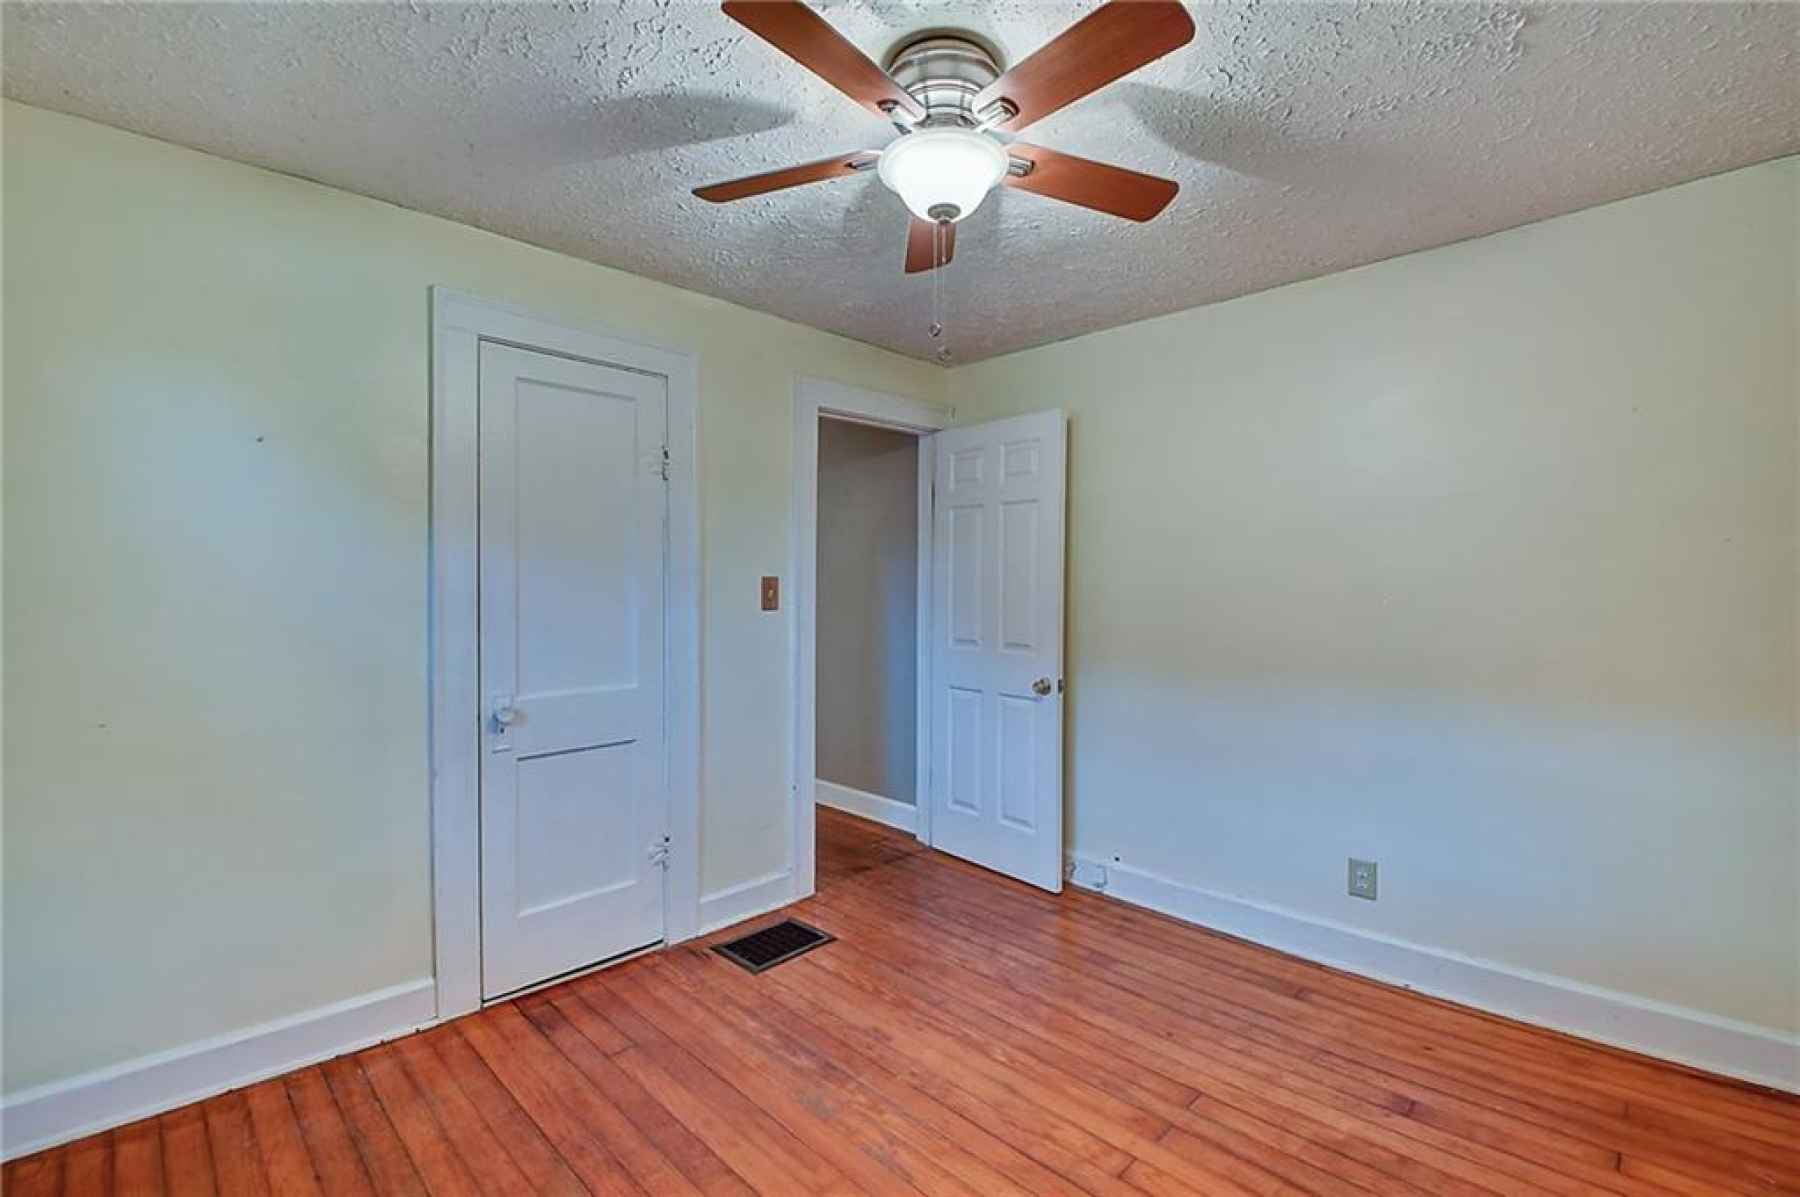 Bedroom on the left of the bathroom. Located at the front of the home.